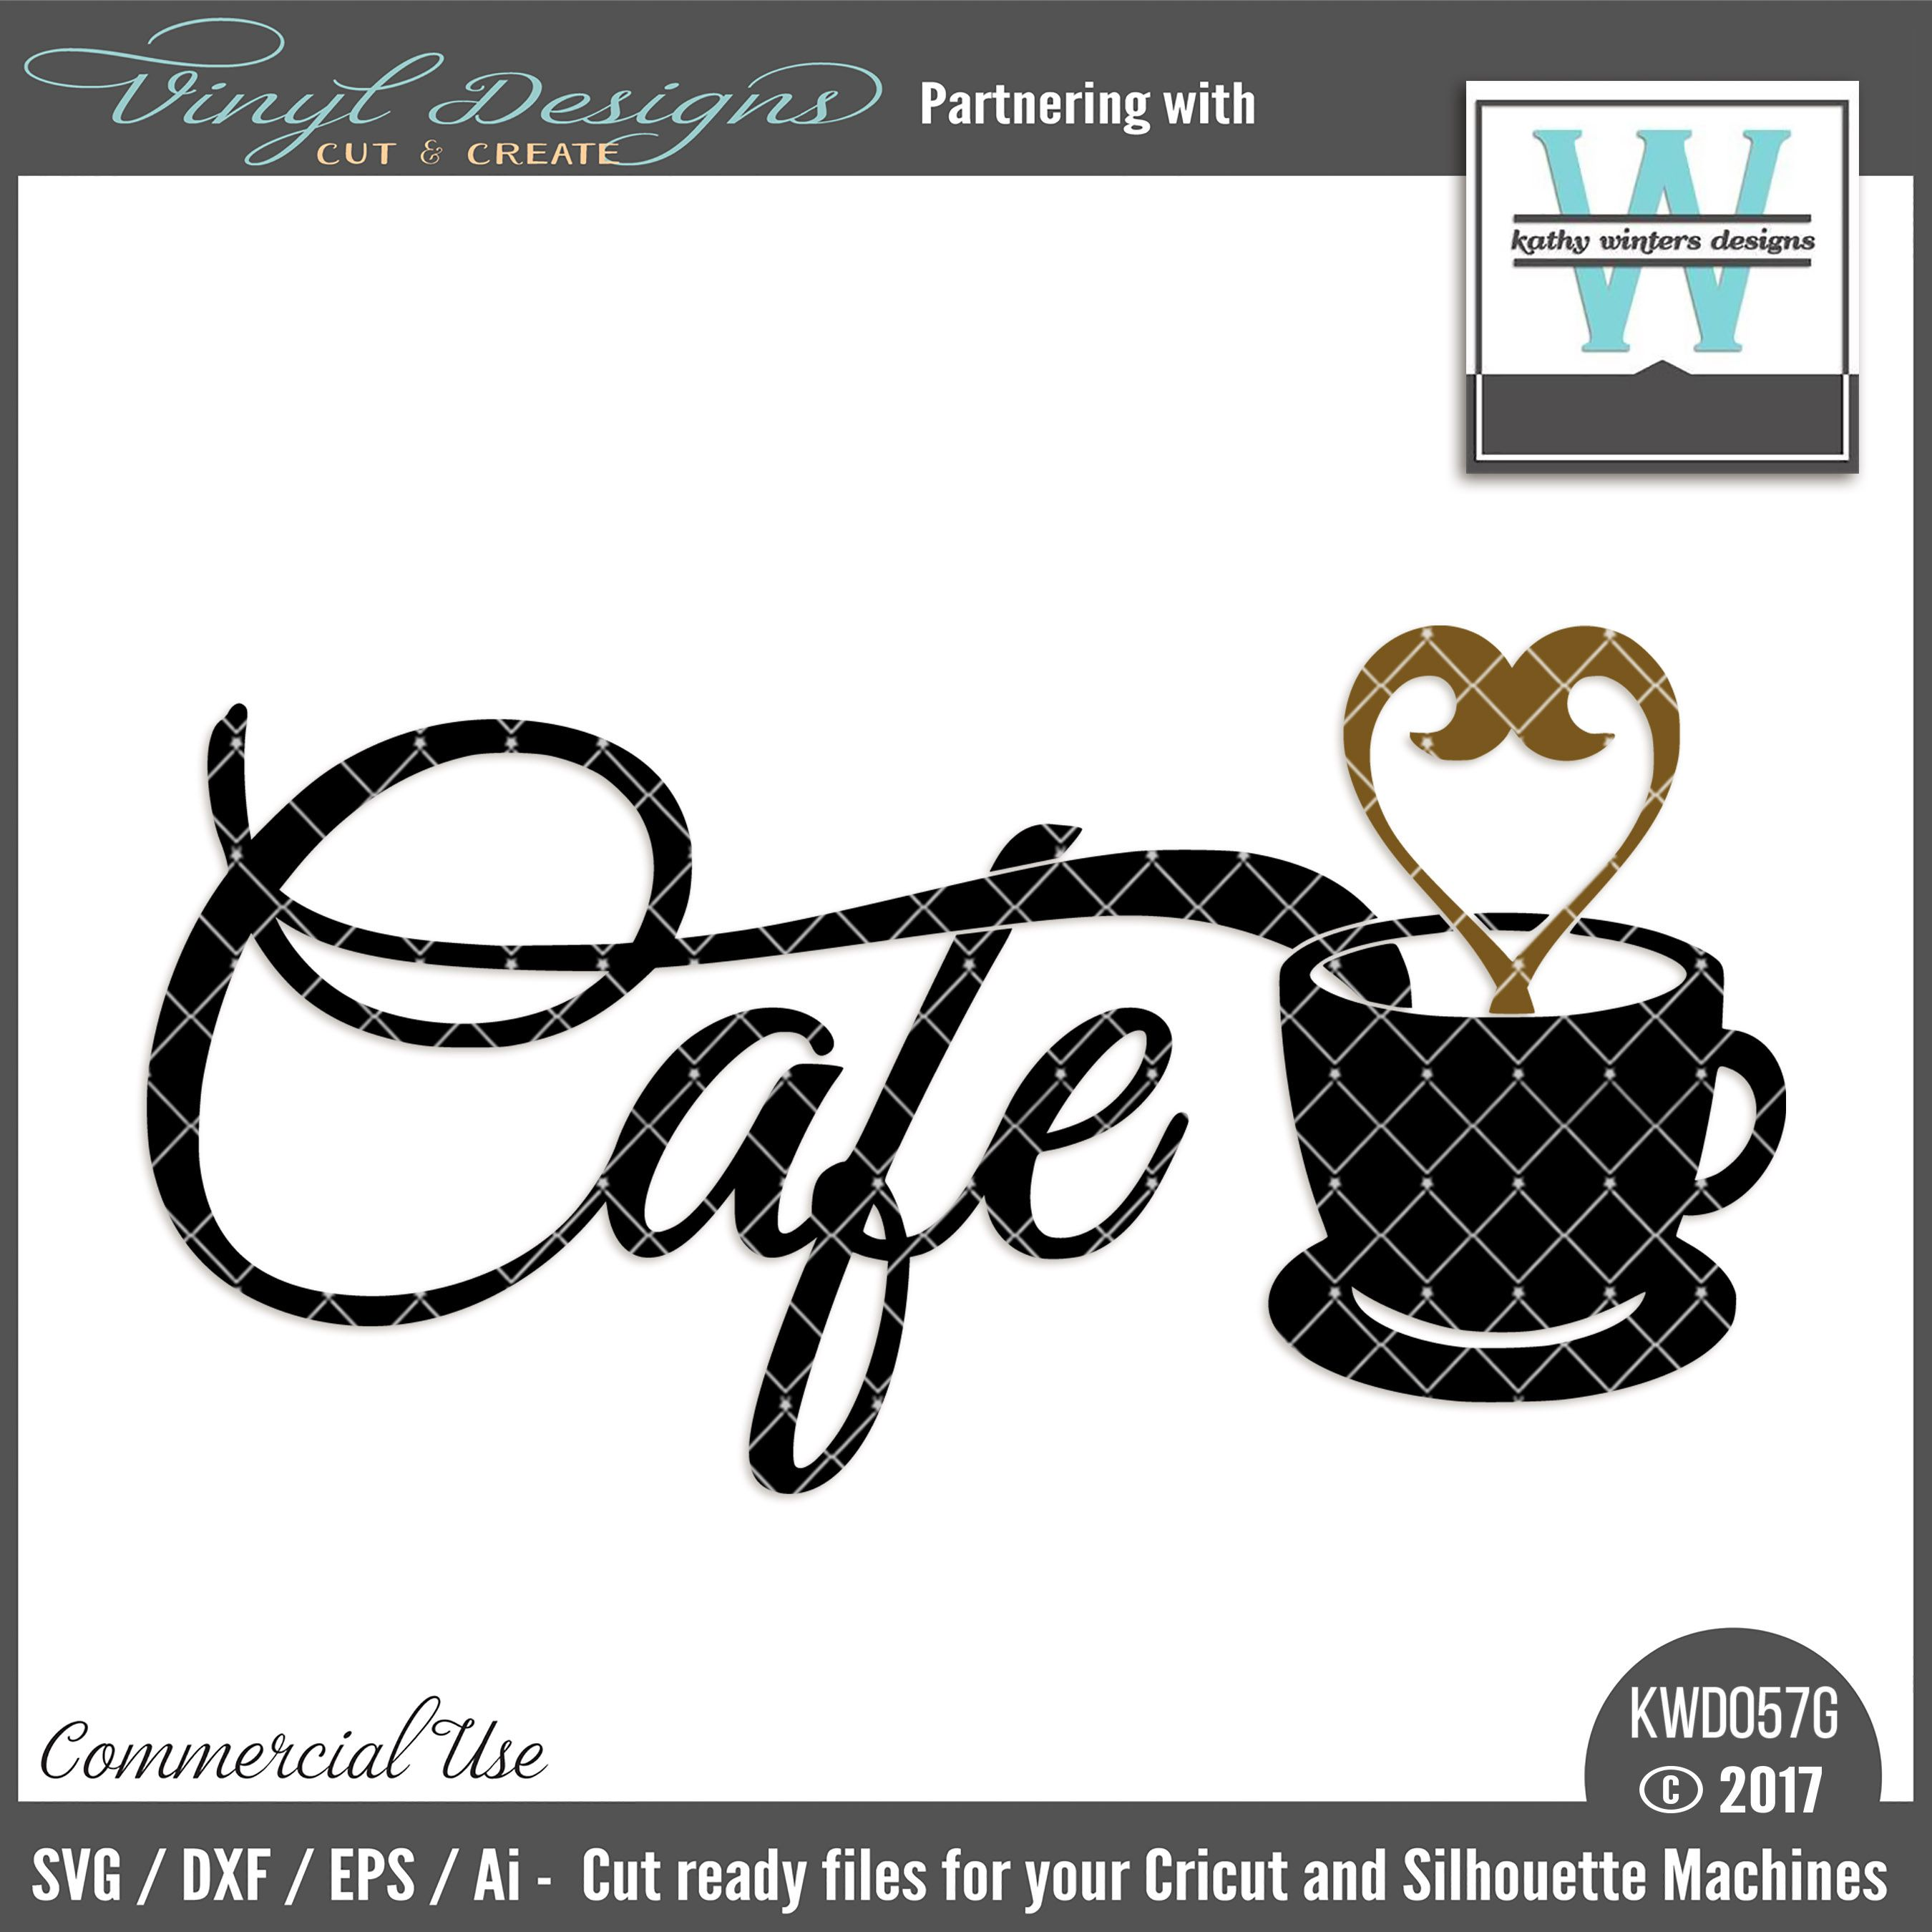 KWD057G Cafe. Sold By Kathy Winters DesignsSmall business